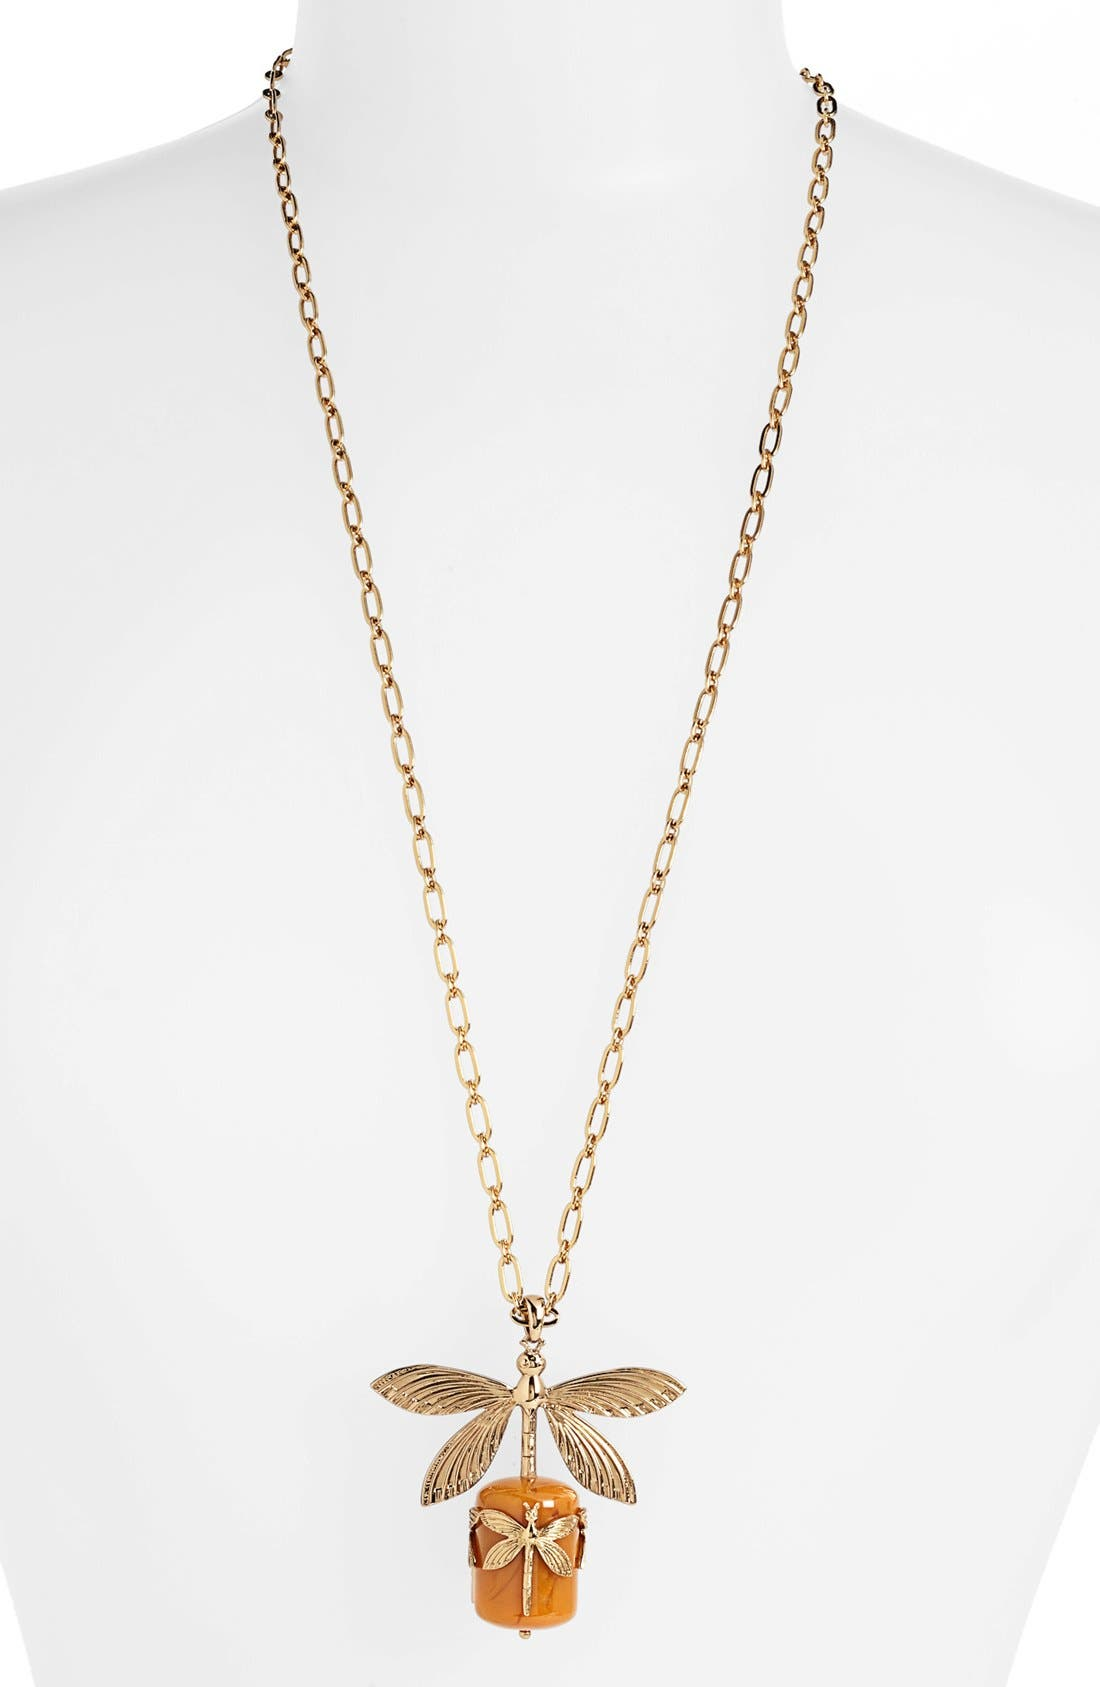 Alternate Image 1 Selected - Tory Burch Dragonfly Pendant Necklace